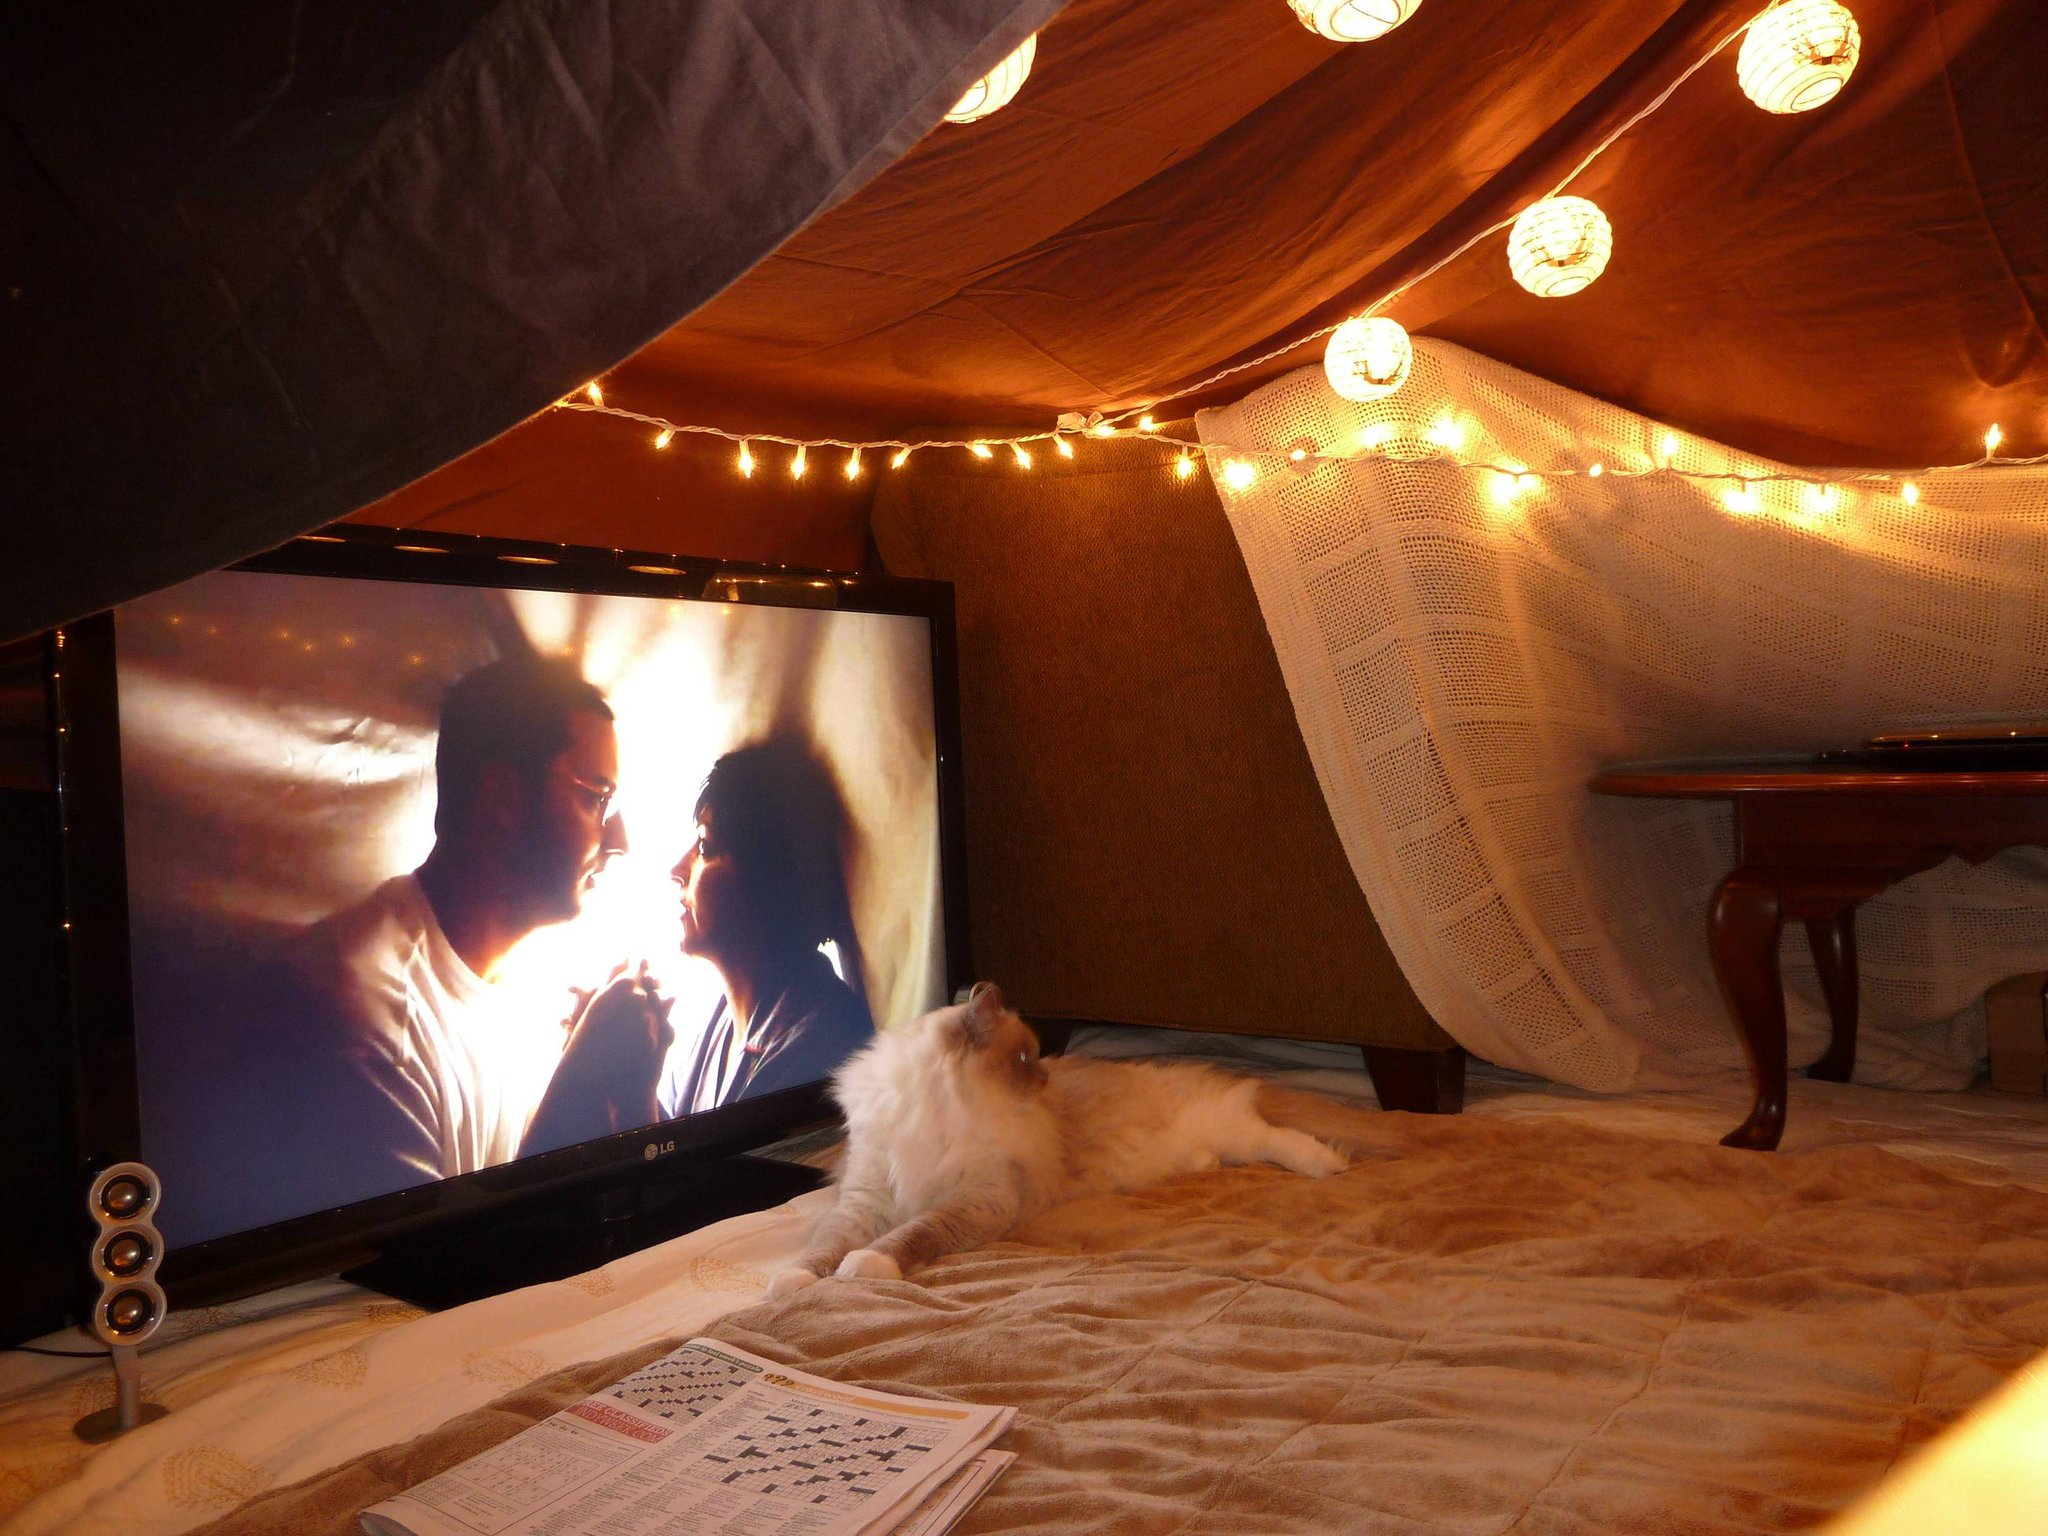 When adults build blanket forts! http://t.co/hp2TYYkAY6